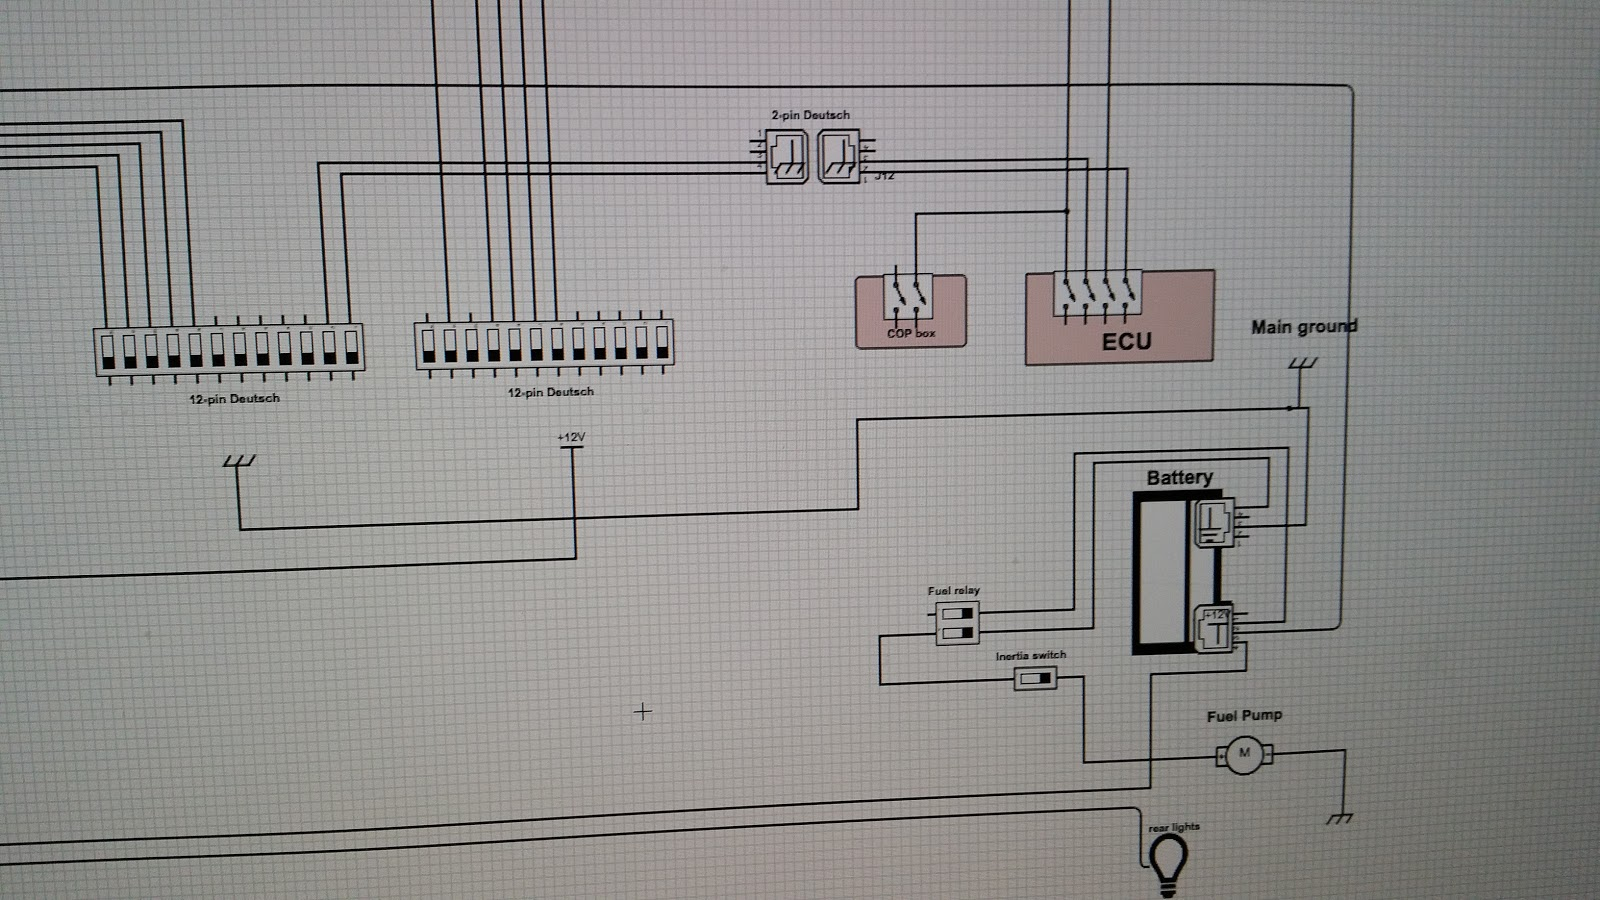 Ill Villain 2015 Ae86 Wiring Diagrams Found These I39m Not Very Good At Reading Early Iteration Main Loop Schematic Purpose Here Was To Figure Out Deutsche Connector Pin Count Clip Type And Size